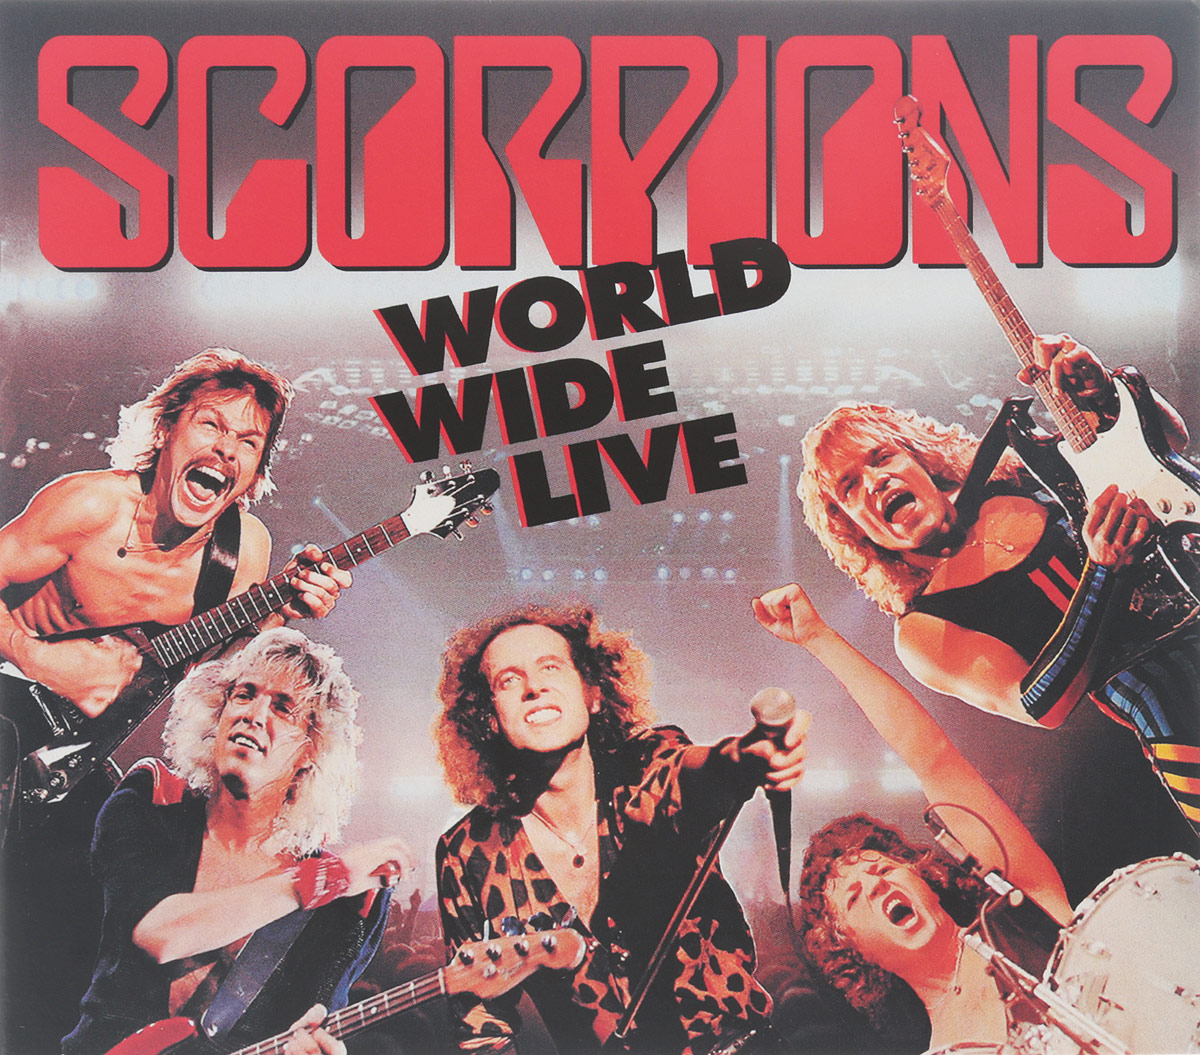 Scorpions Scorpions. World Wide Live. 50th Anniversary Deluxe Edition (CD + DVD) i found you